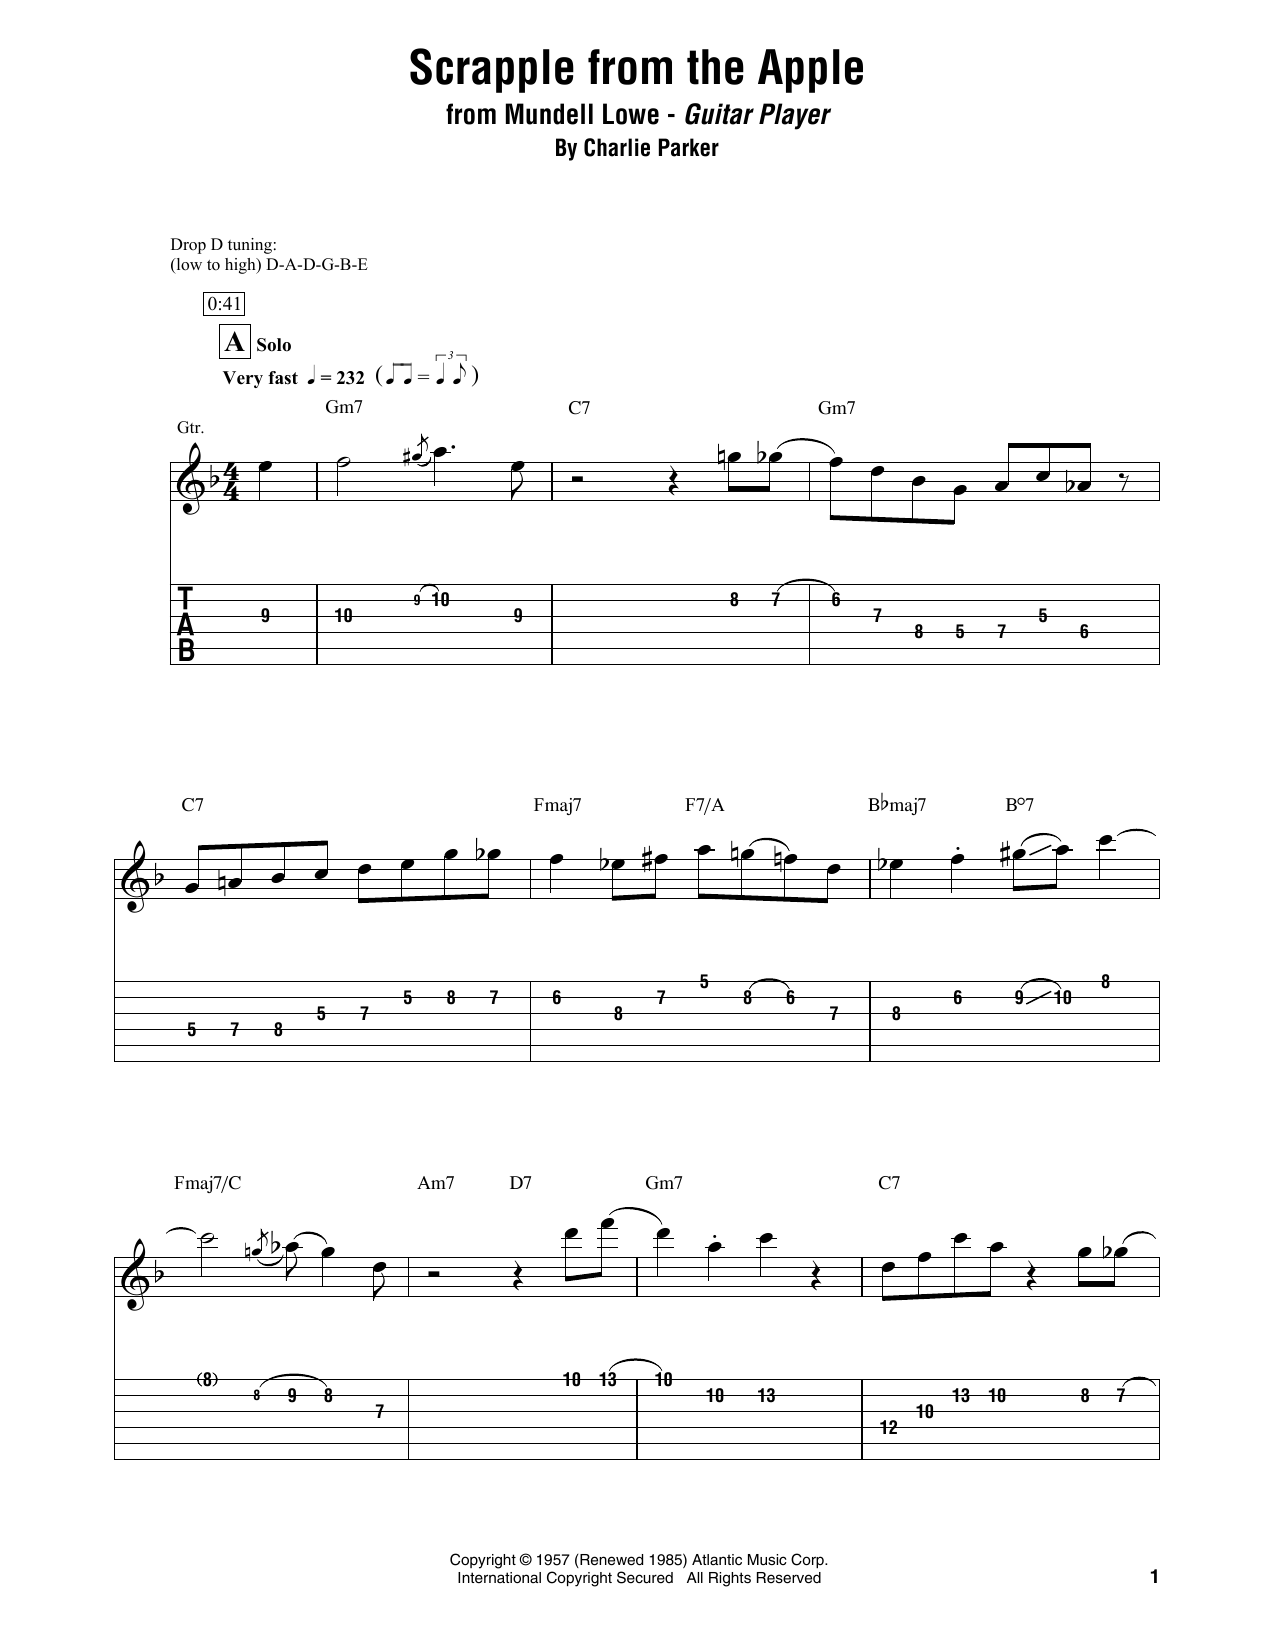 Mundell Low Scrapple From The Apple Sheet Music Pdf Notes Chords Jazz Score Electric Guitar Transcription Download Printable Sku 419166